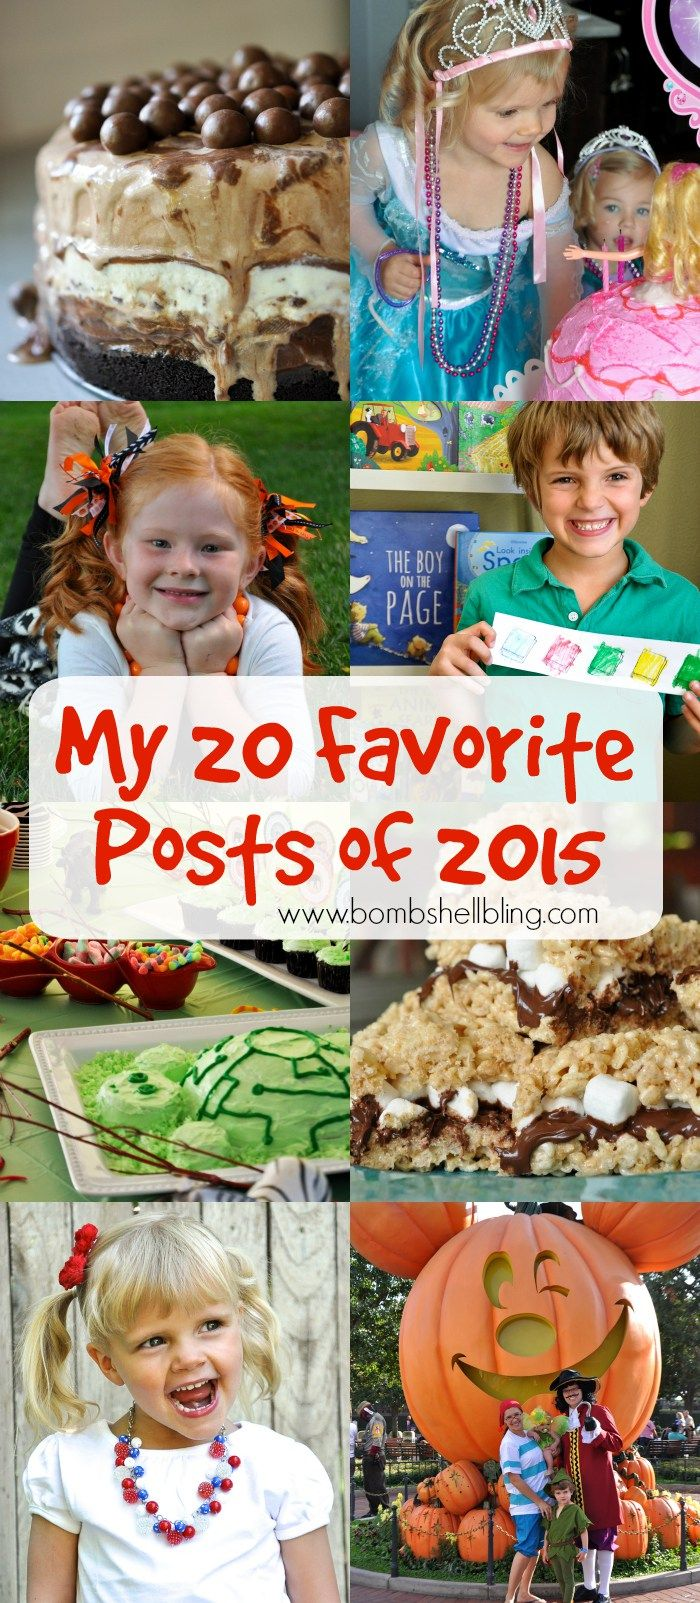 My 20 Favorite Posts of 2015 on Bombshell Bling